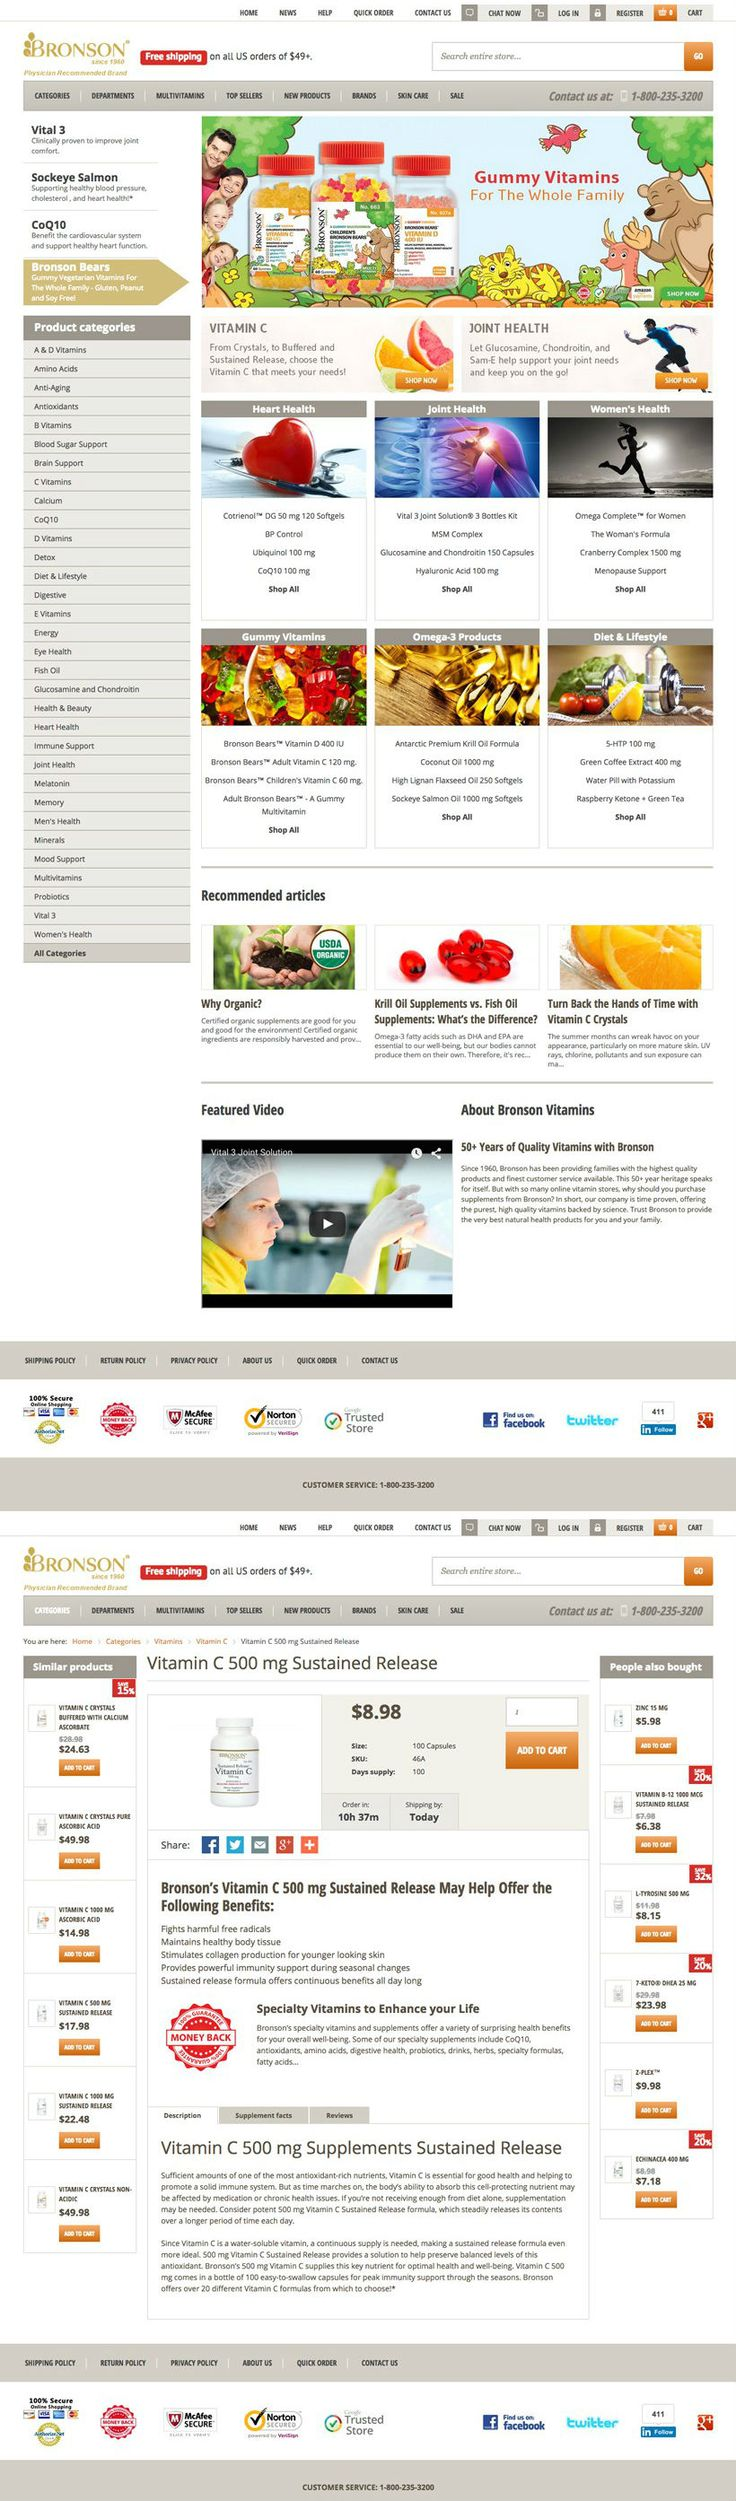 Bronson Laboratories is US based international healthcare company. We developed and implemented a high class, #Magento based, fully responsive #eCommerce web solution. Platform has been integrated with Bronson's internal order management application. Our major #design challenge was to display products in easy, attractive and accessible manner for a wide spectrum of users.  Visit: http://www.bronsonvitamins.com